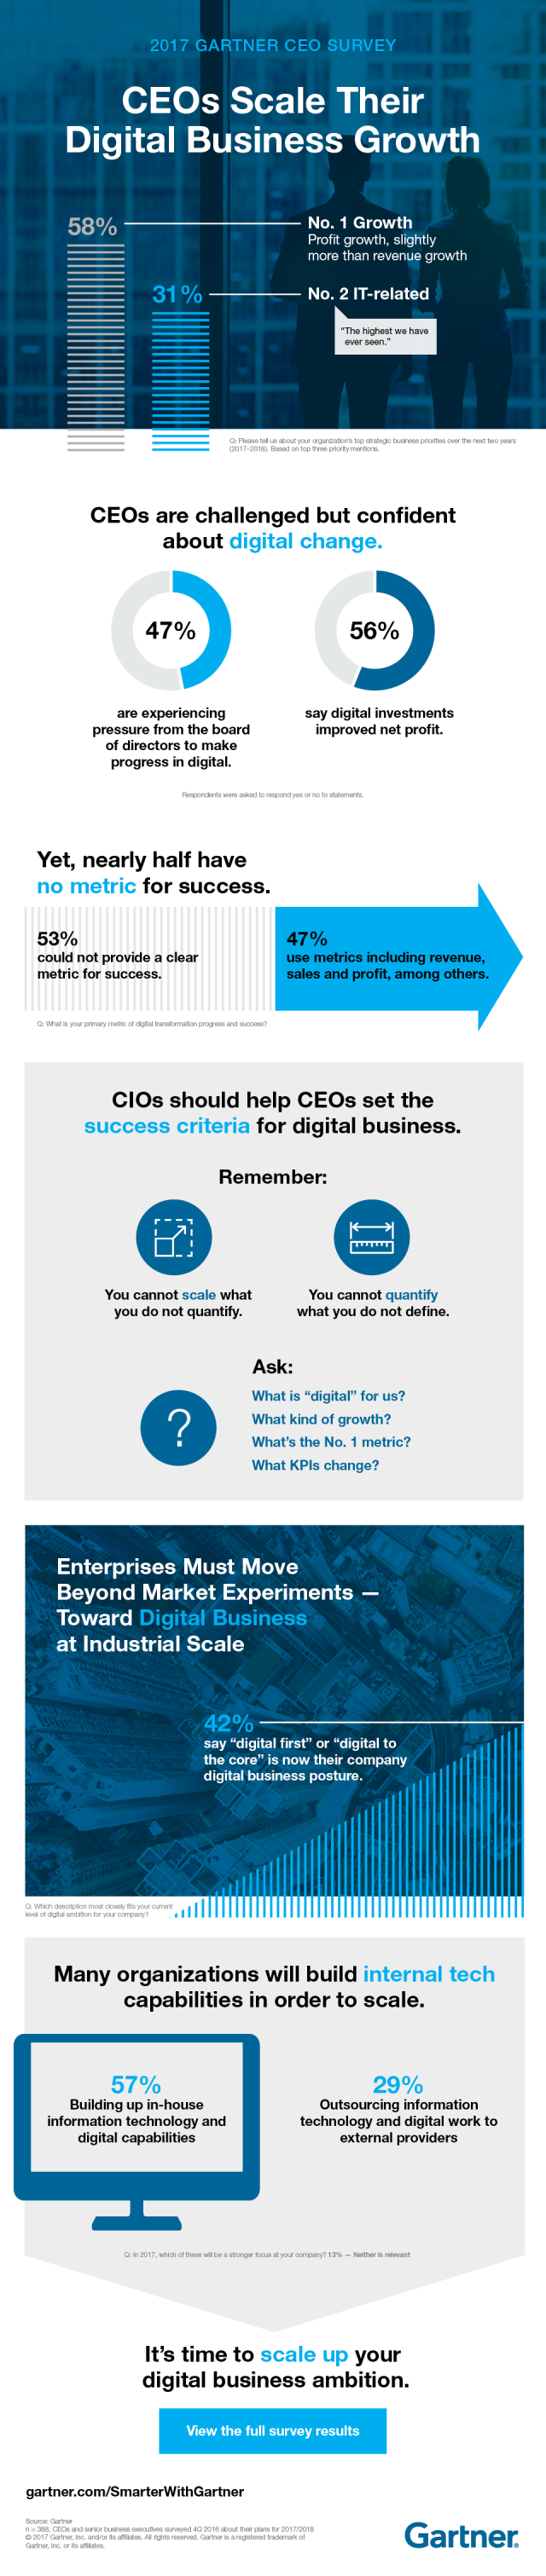 Infographic: CEOs Scale Their Digital Business Growth